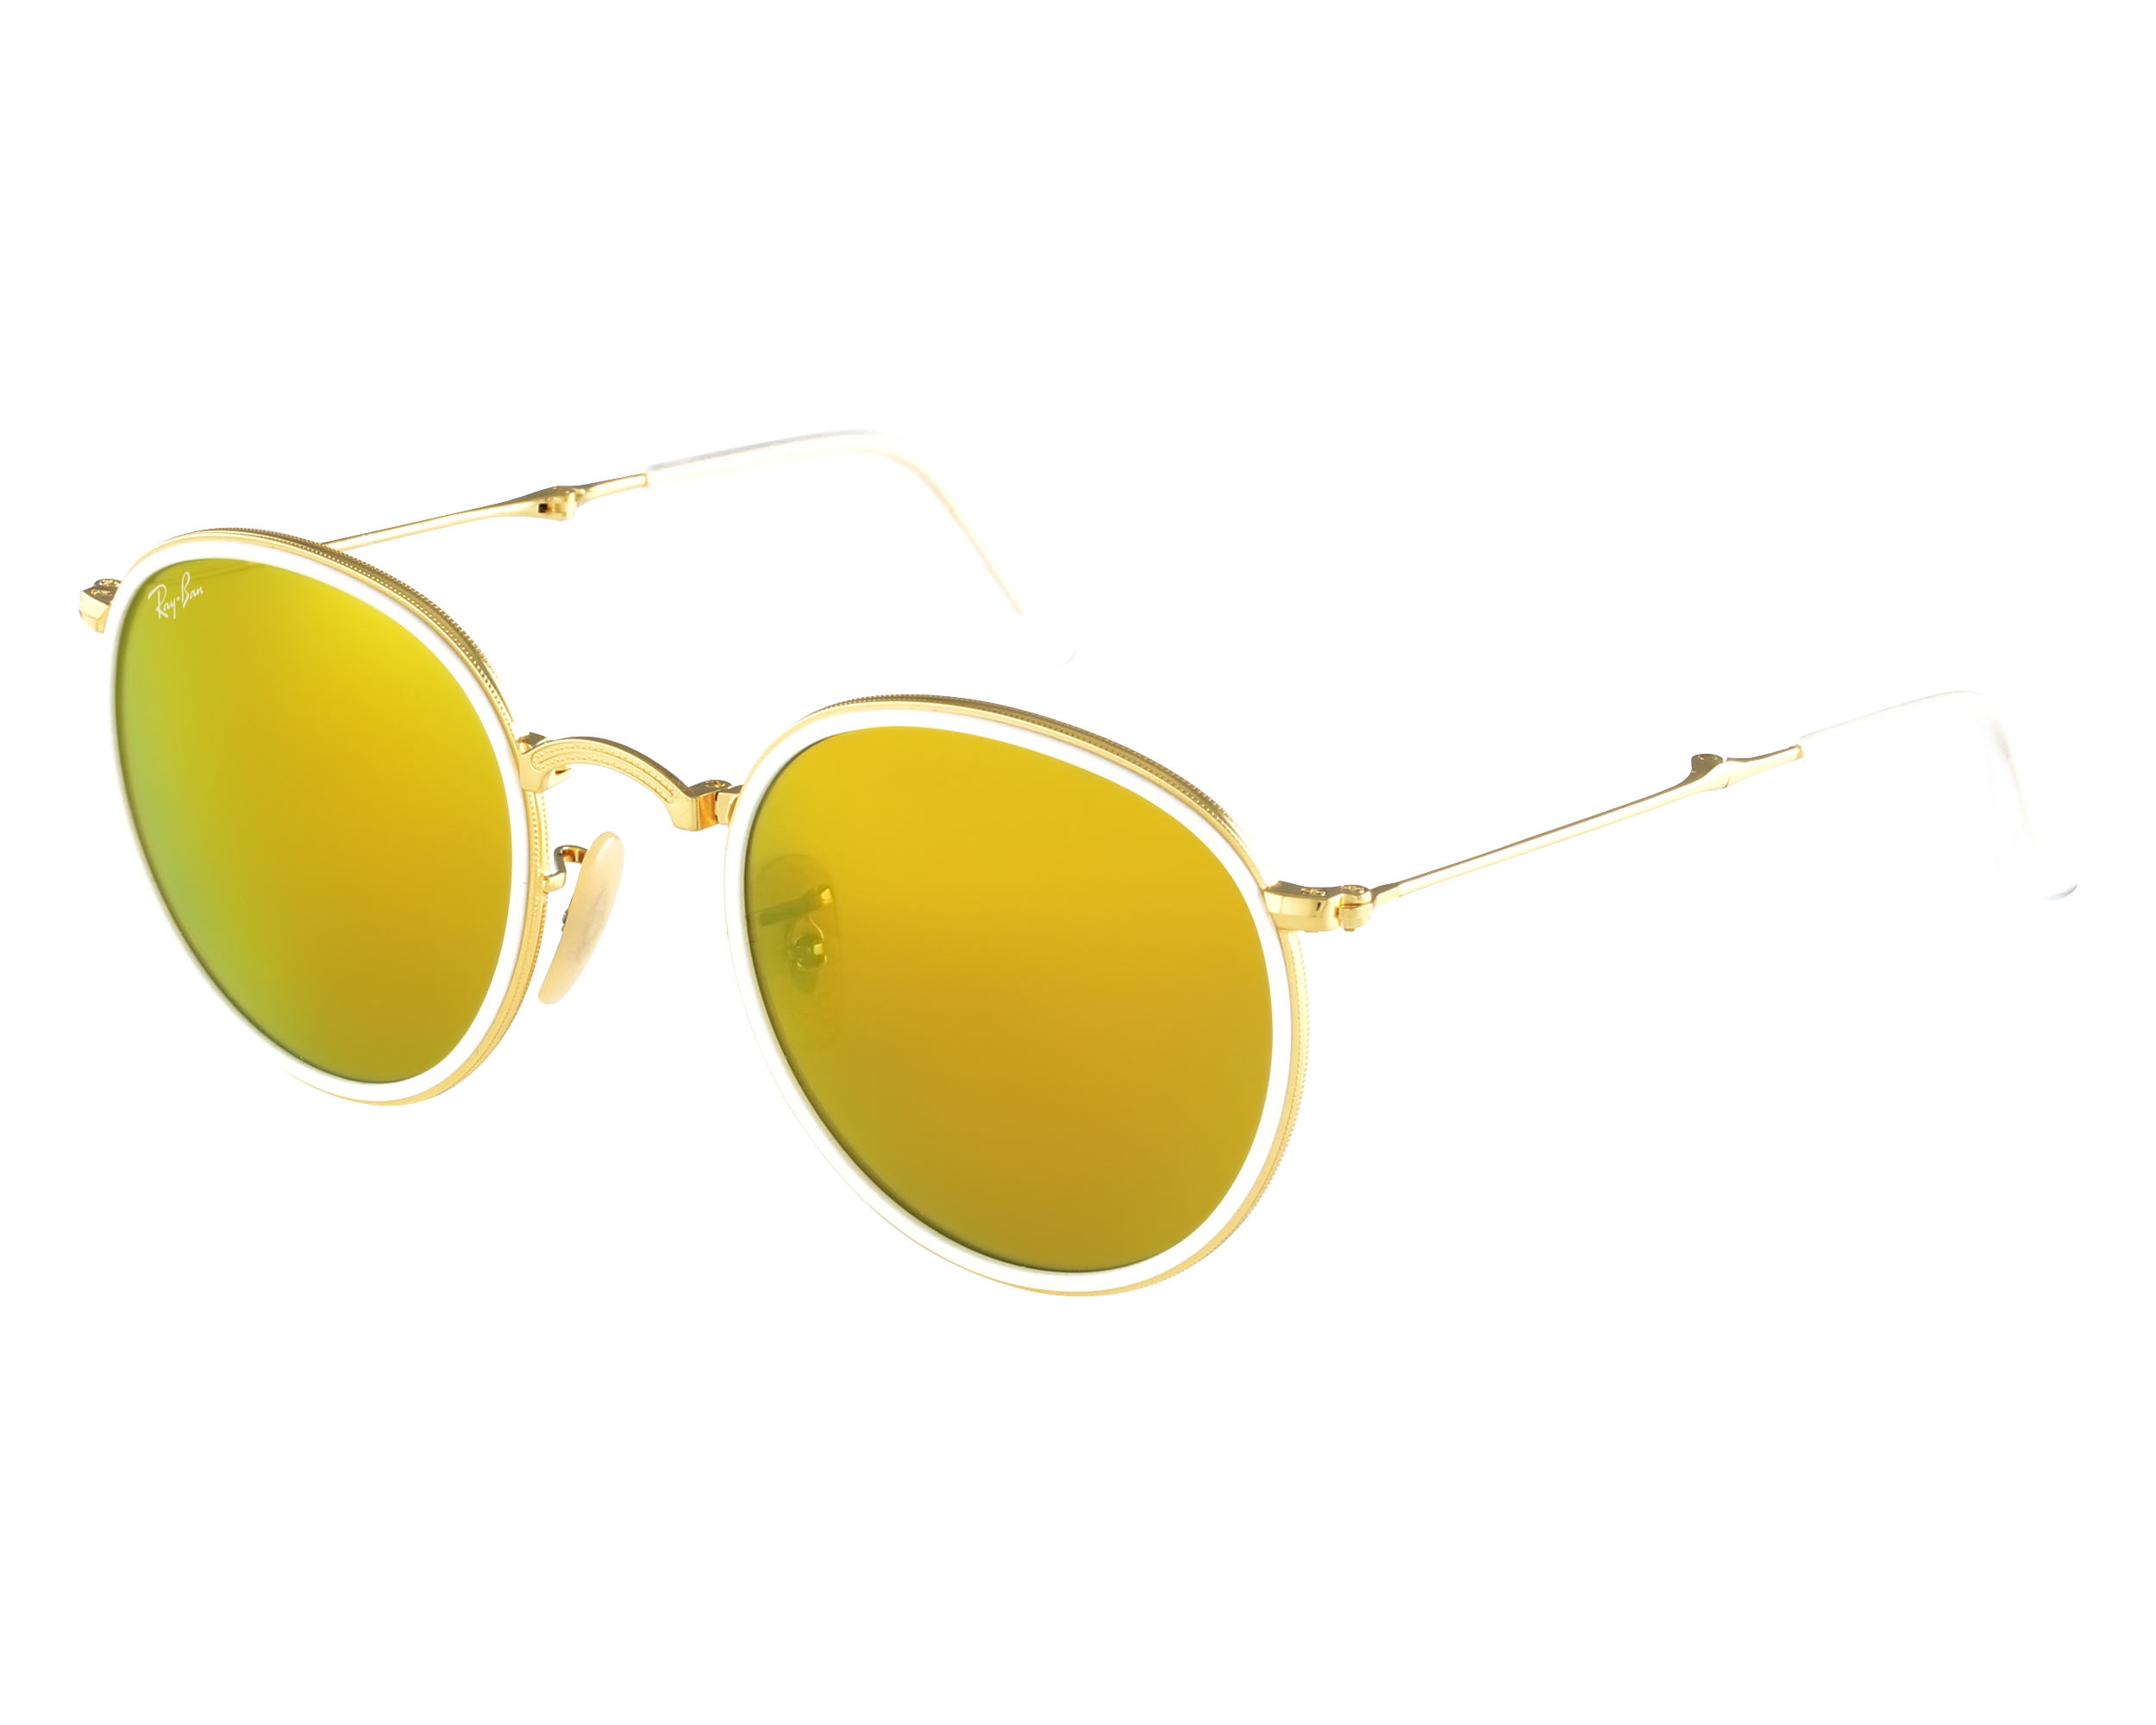 5ec711eec4 thumbnail Sunglasses Ray-Ban RB-3517 001 93 - Gold White front view